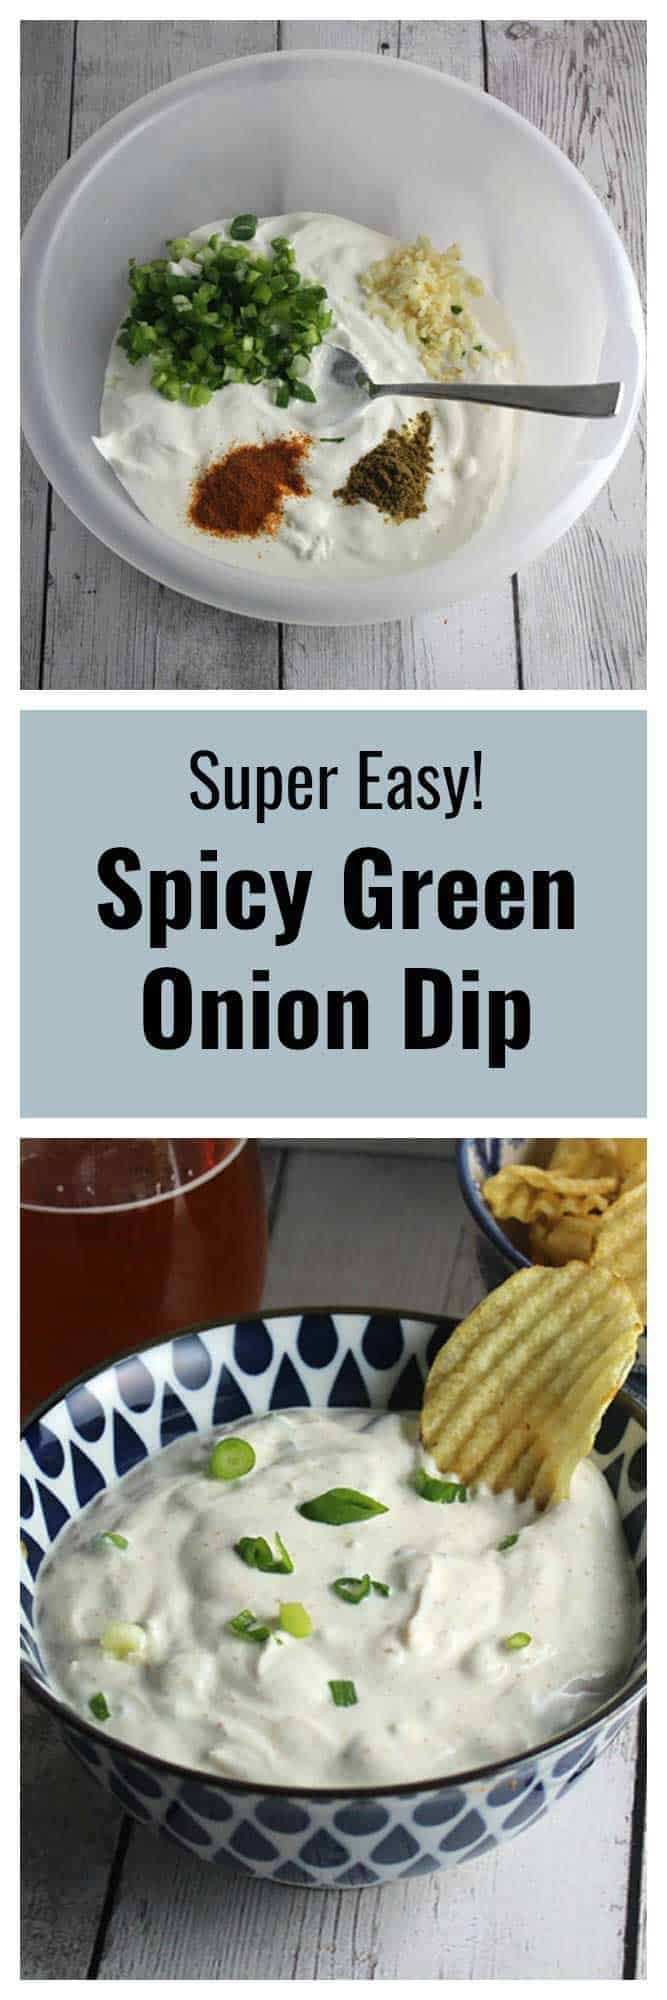 bowl with green onion dip ingredients on top, lower image has finished spicy green onion dip in a bowl.